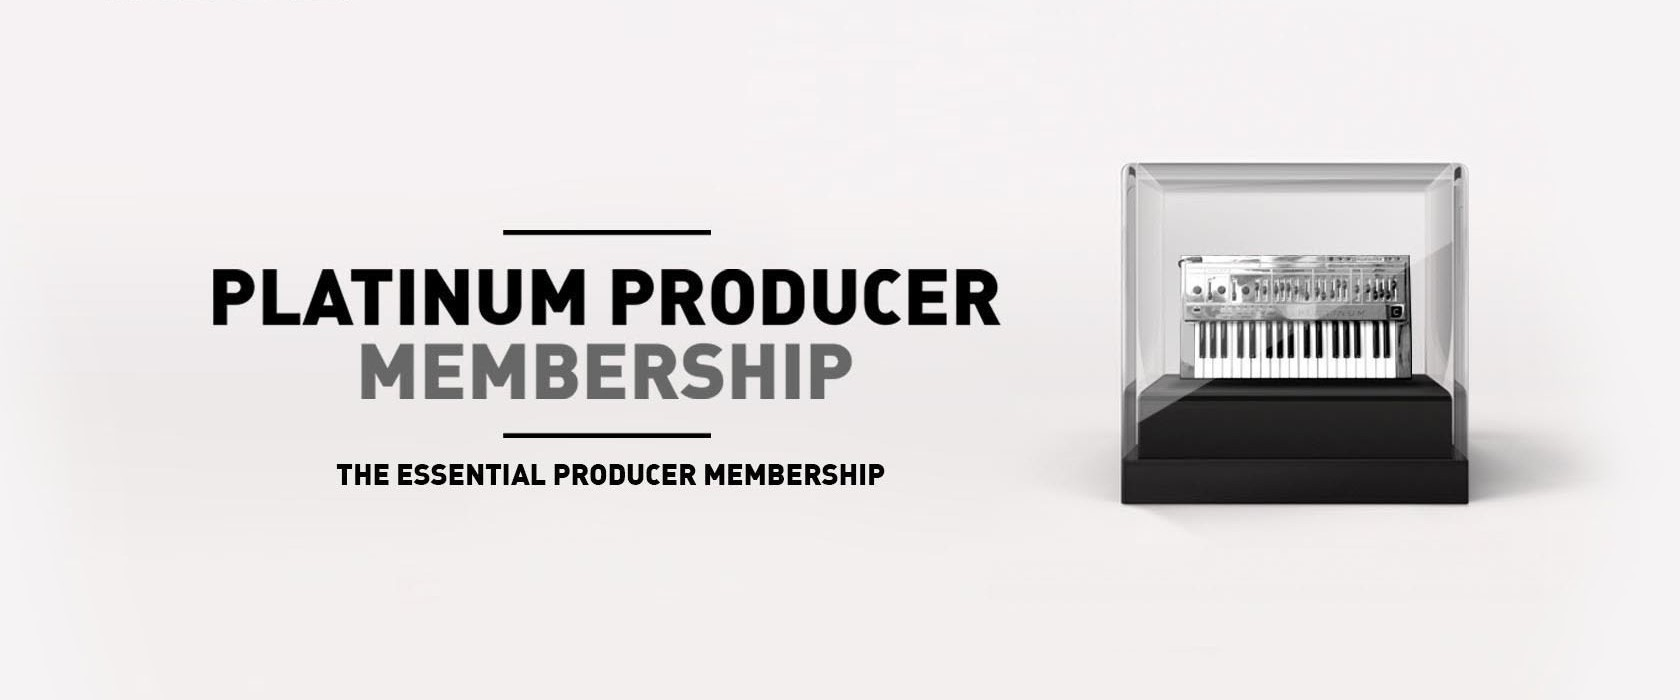 Sample Tools by CR2 Platinum Producer Membership